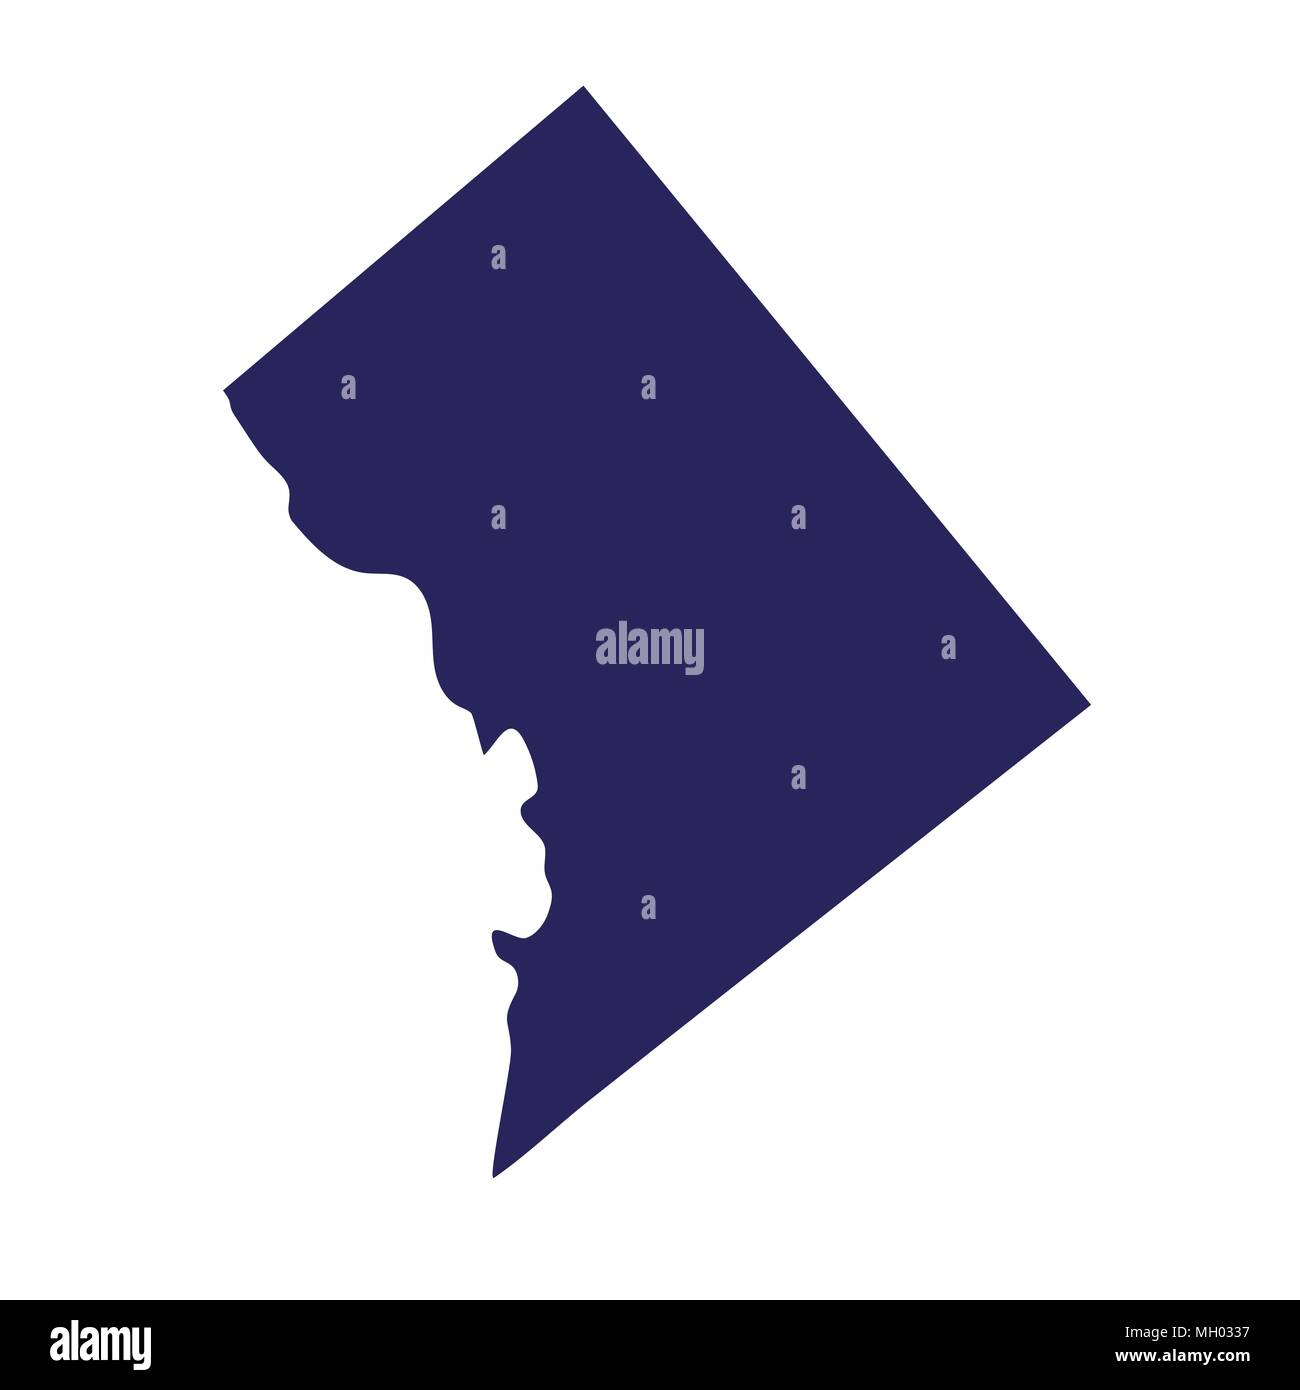 District Of Columbia Map on